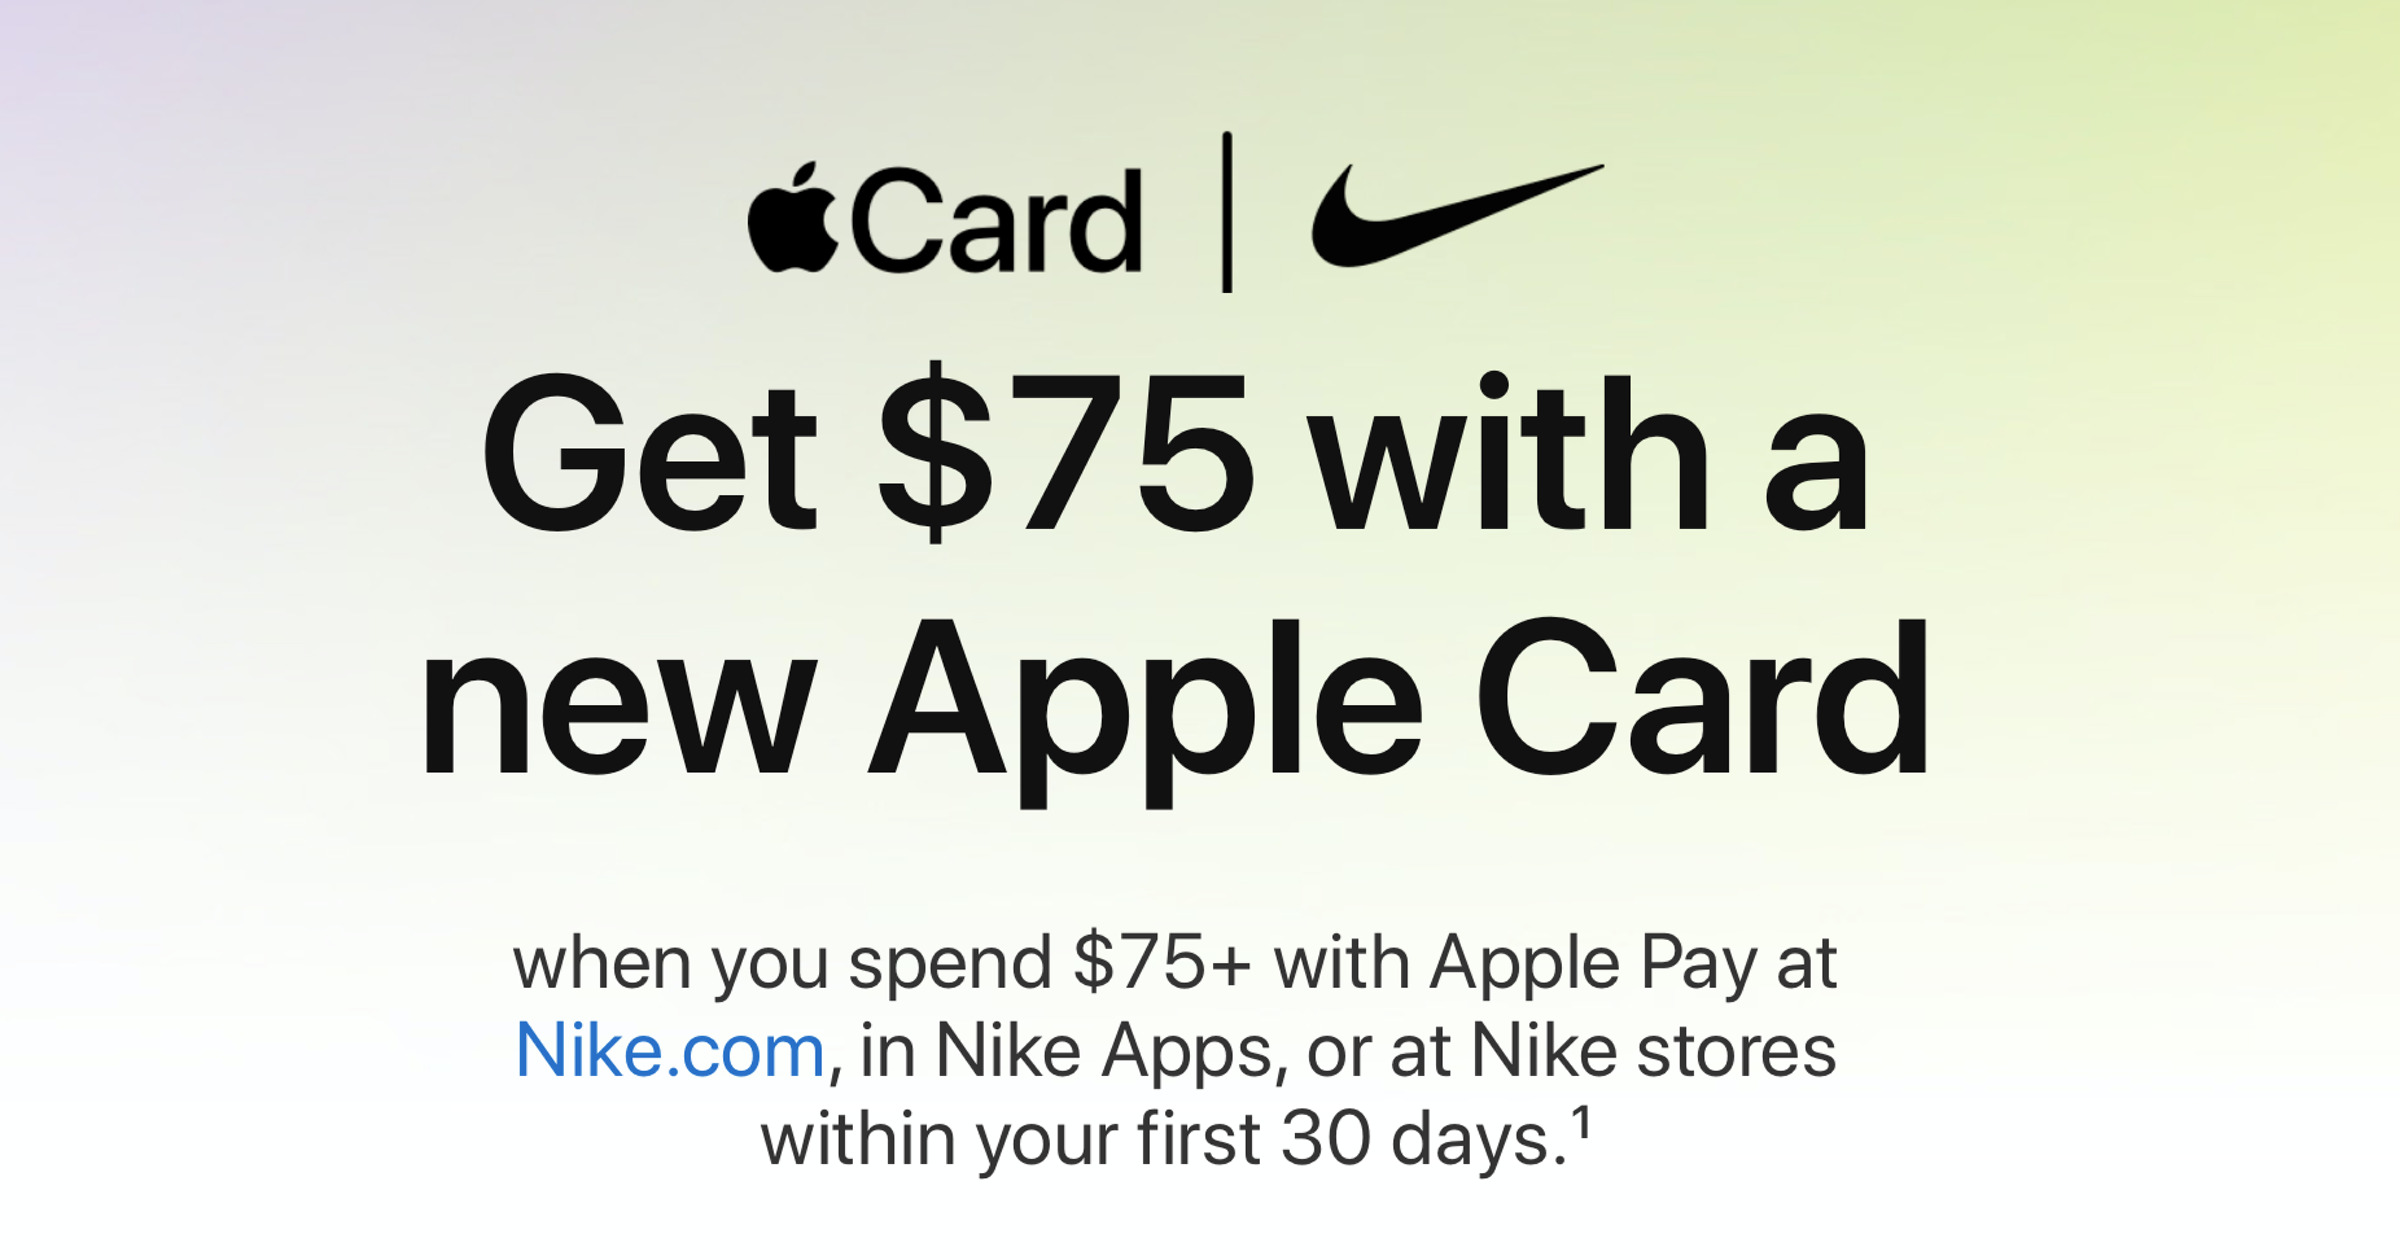 Apple Card Nike offer